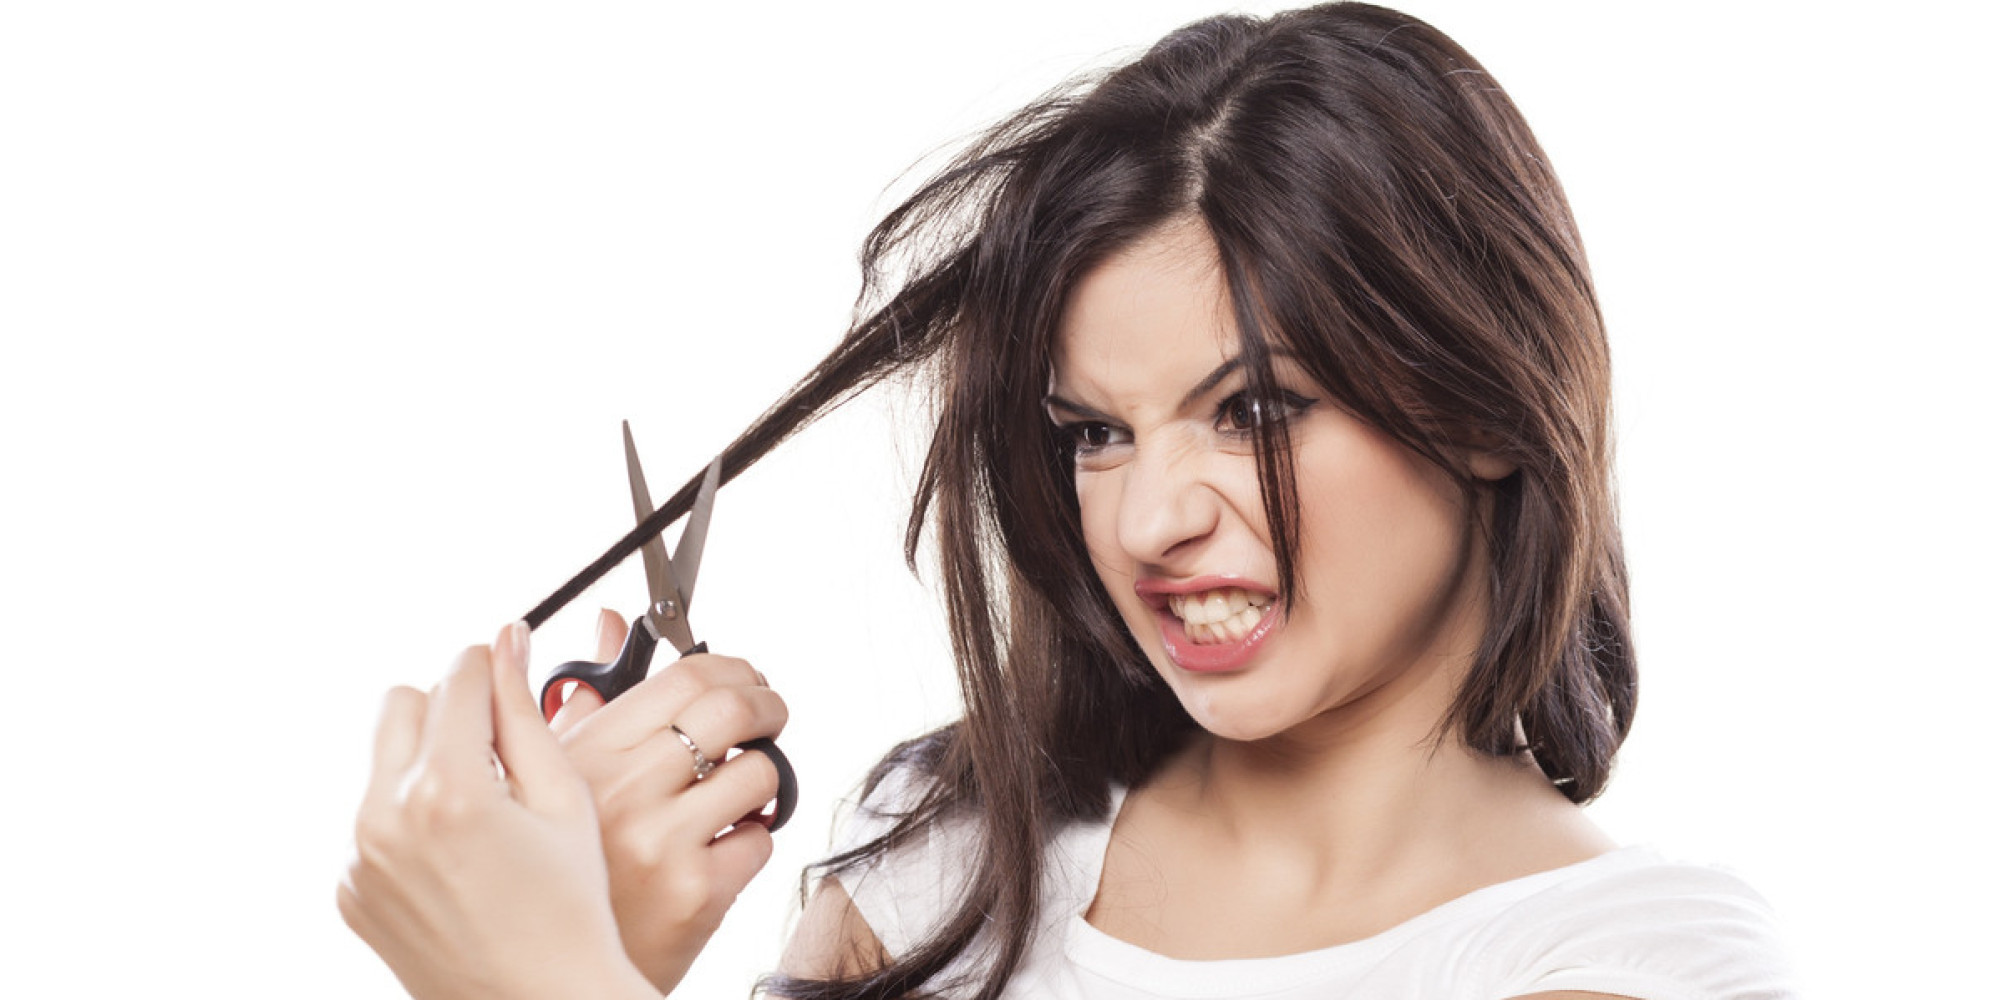 Best ideas about How To Cut Girls Hair . Save or Pin 19 People Who Shouldn t Be Allowed To Cut Their Own Hair Now.